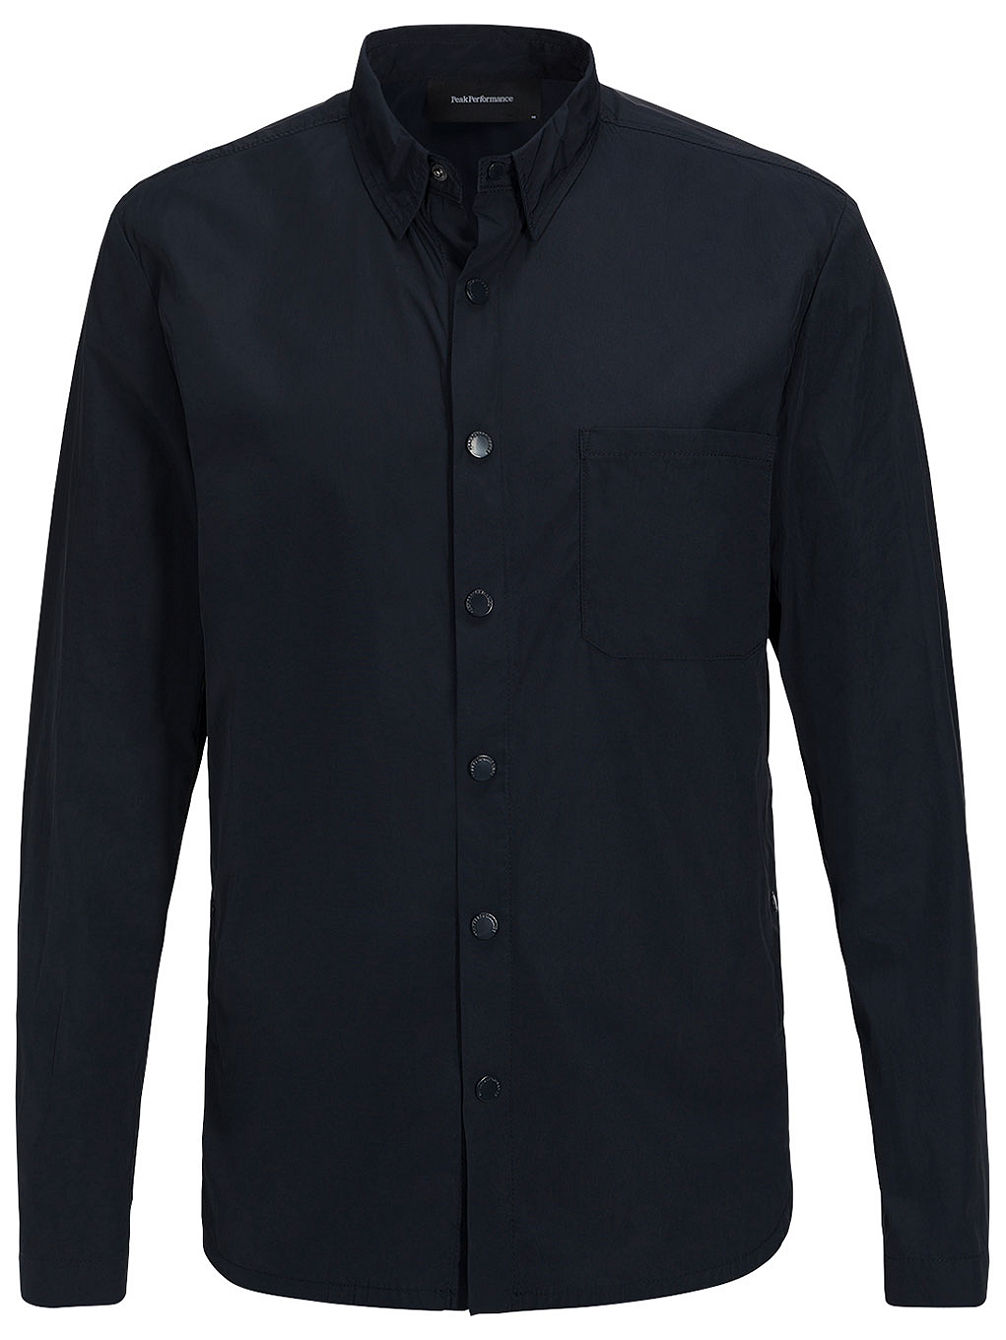 Laird Shirt Jacket